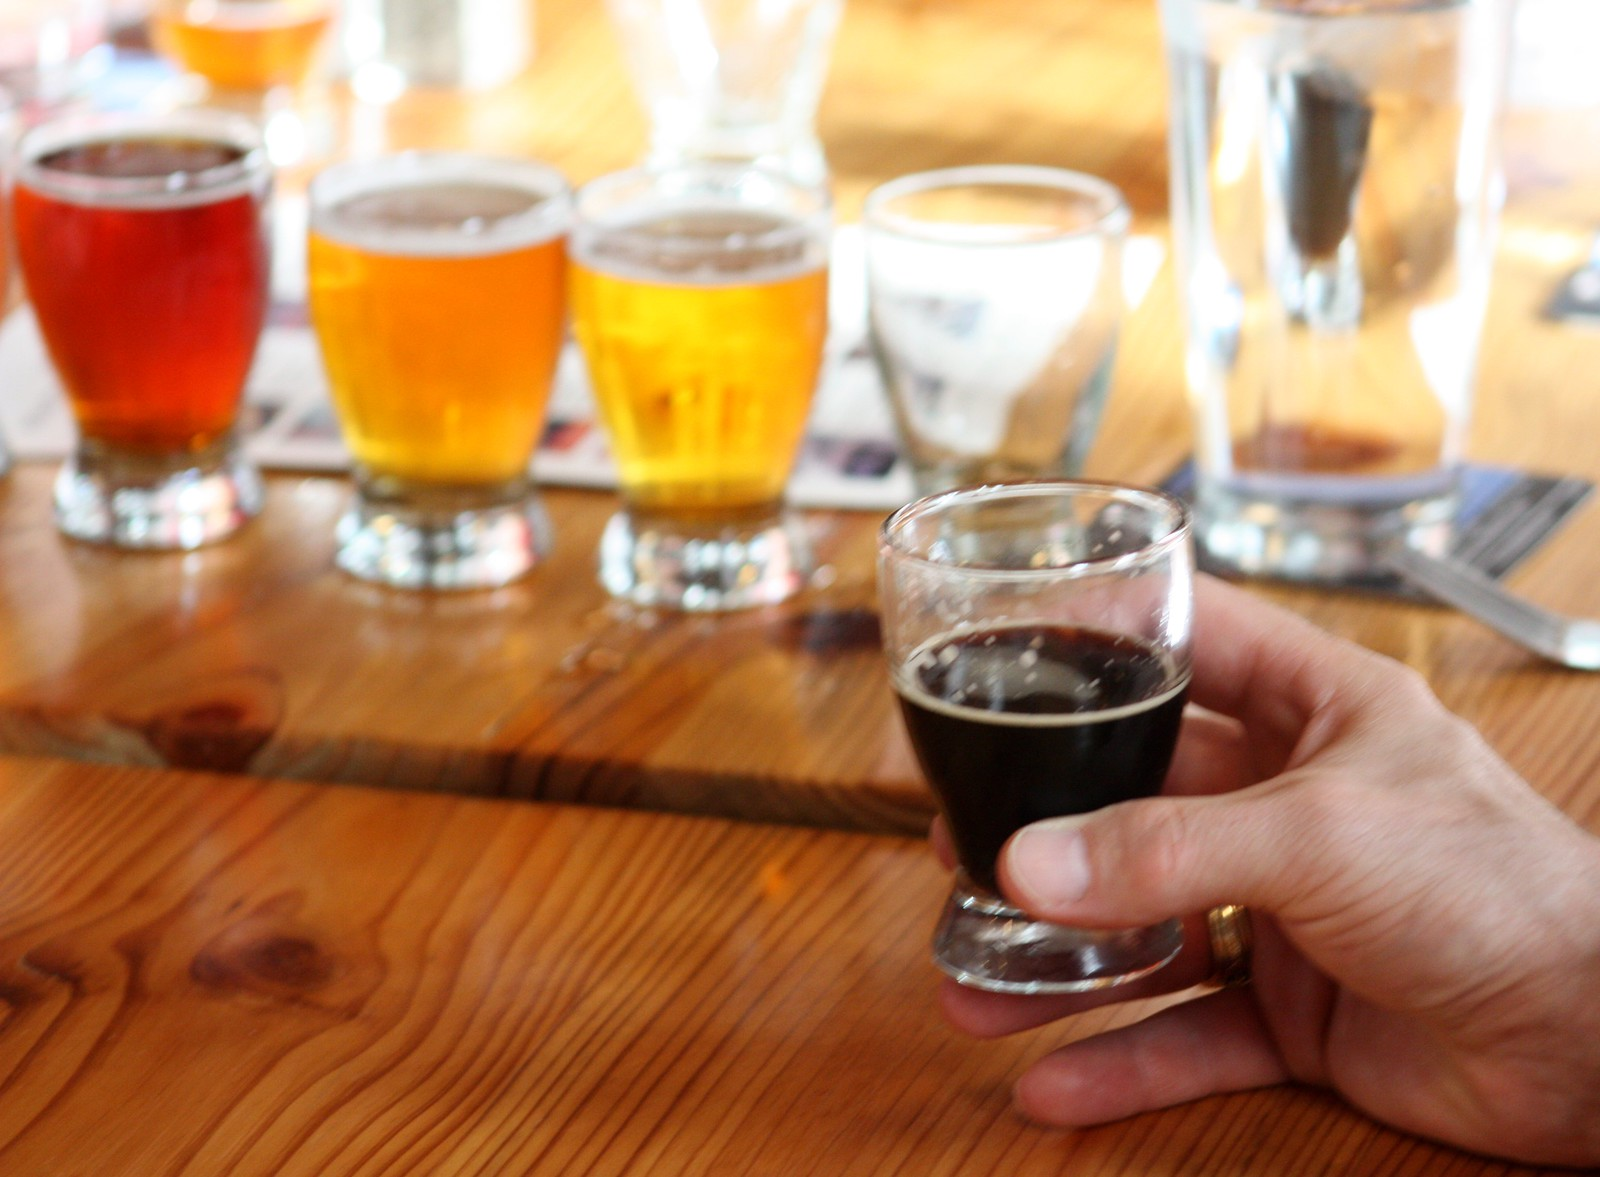 Delicious Beers at the Great Lakes Brewing Co